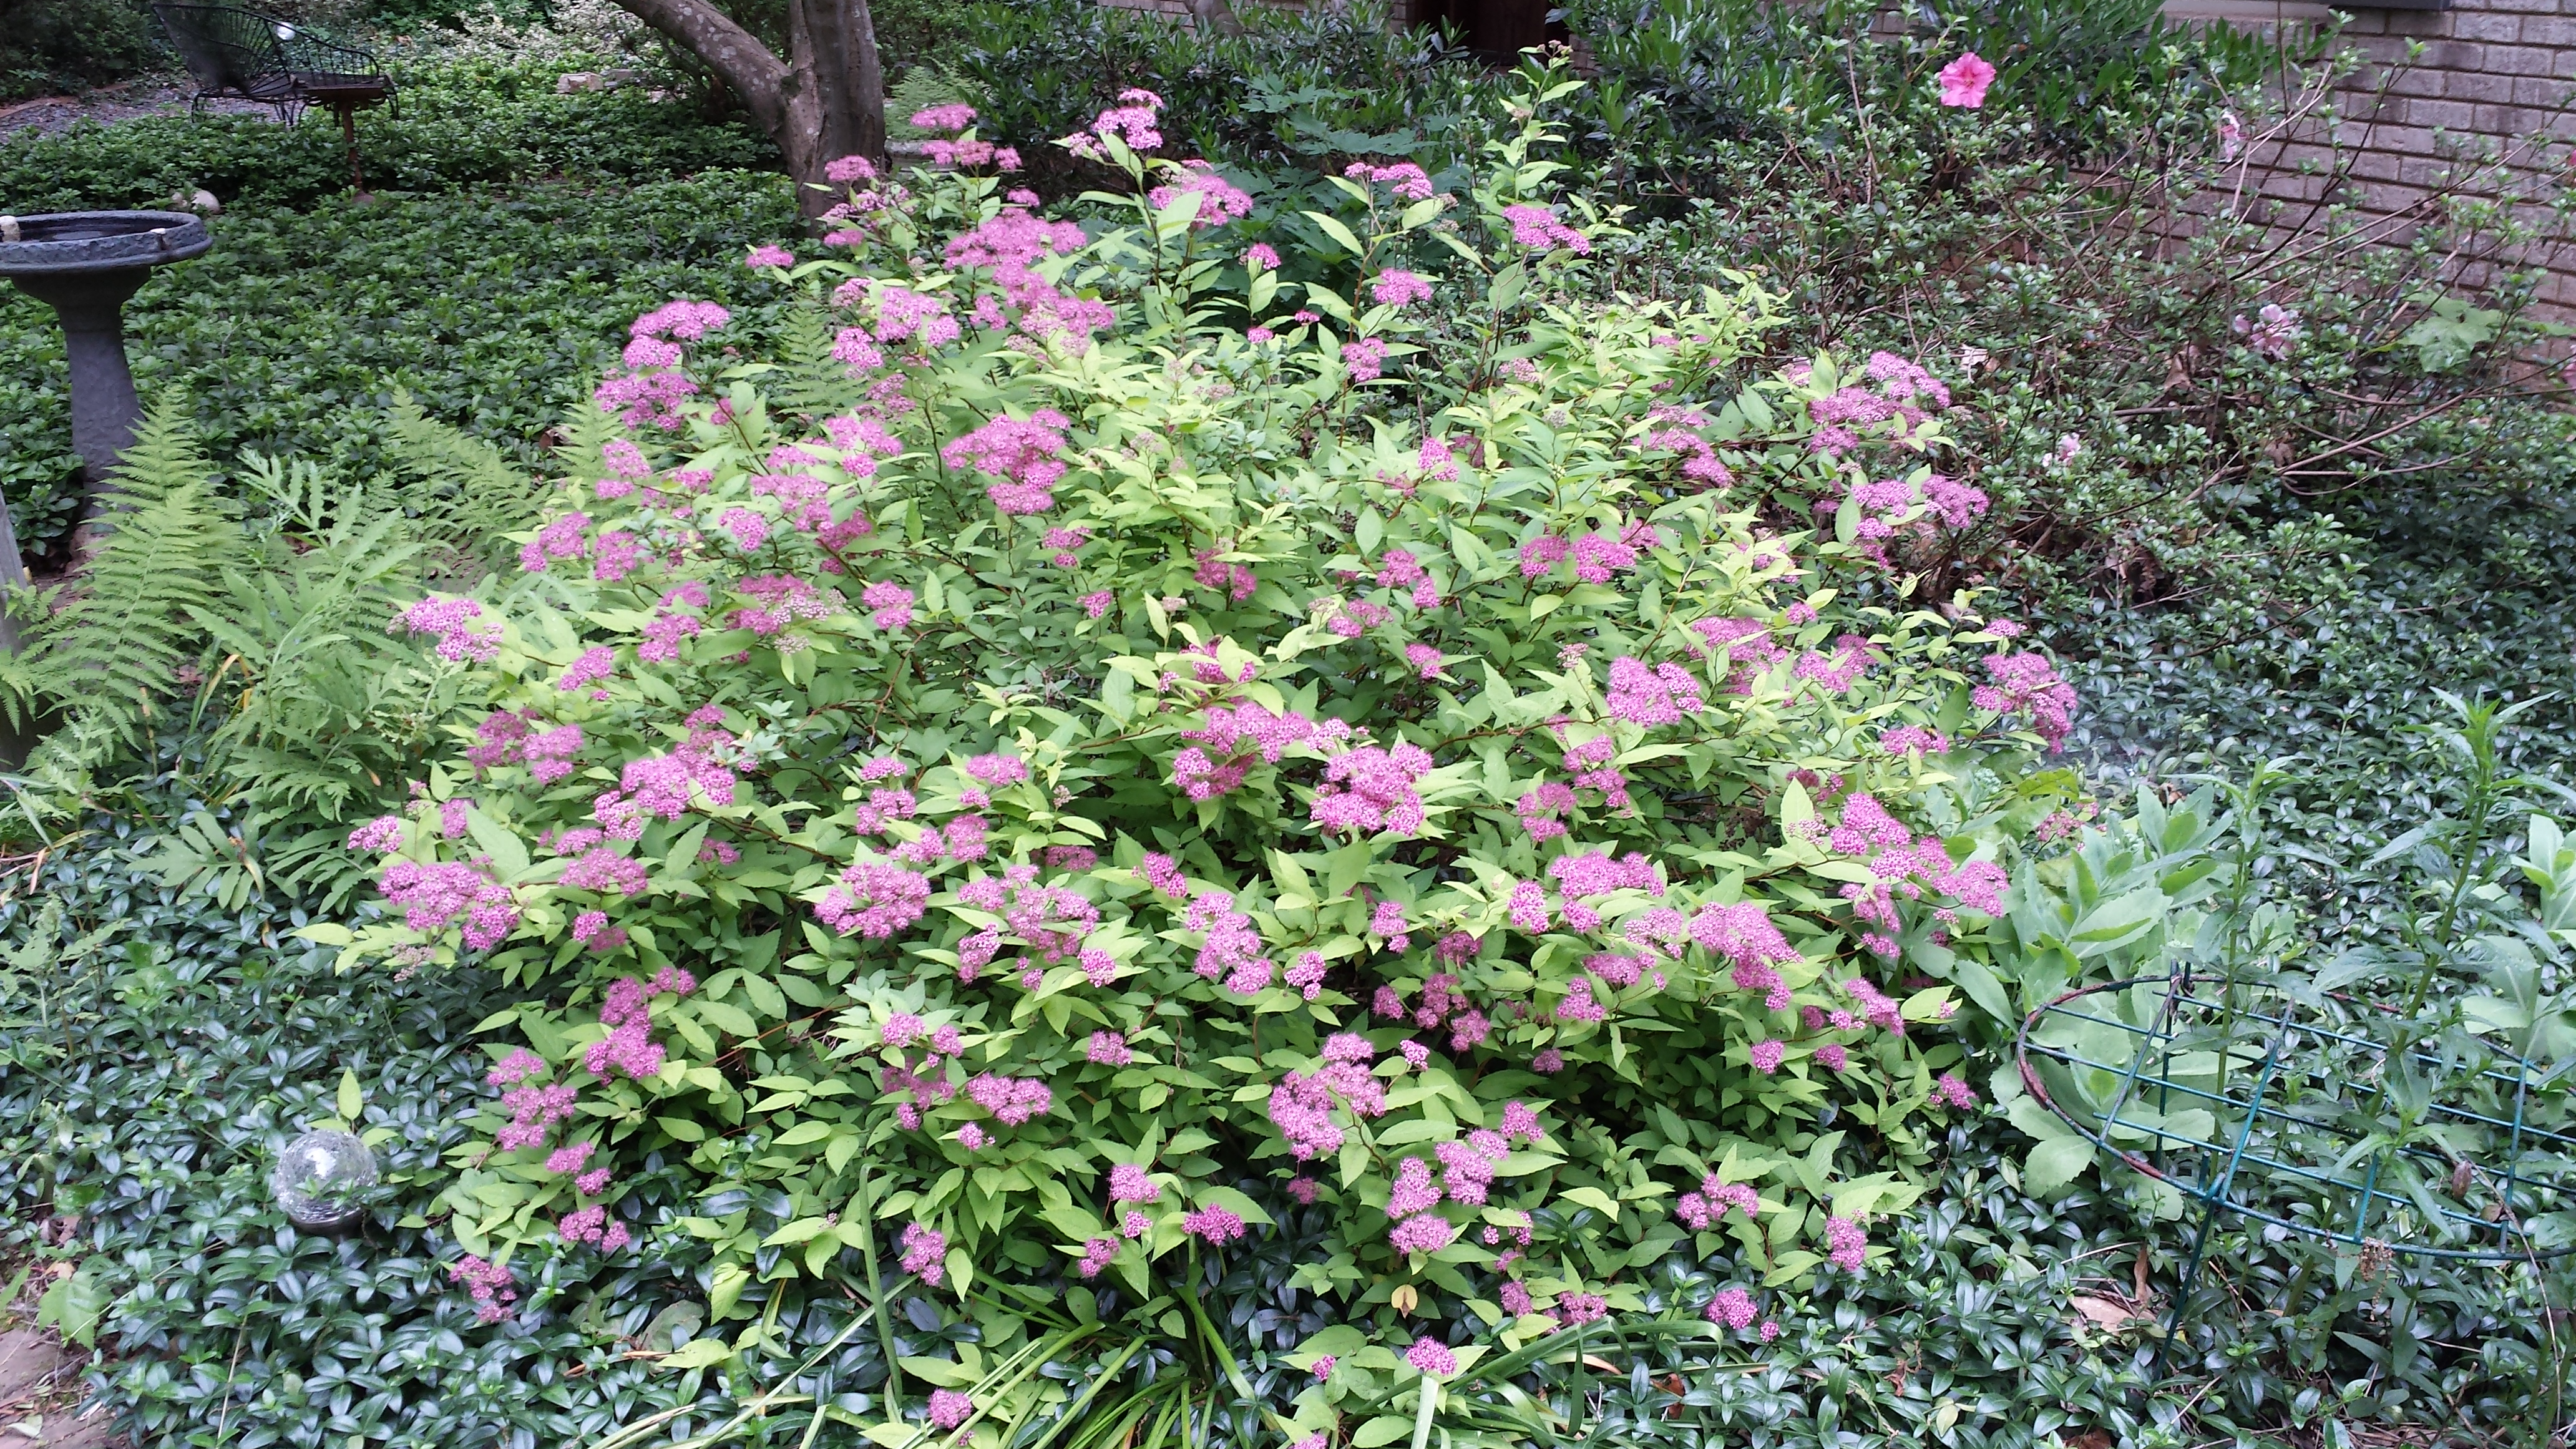 This spirea has chartreuse leaves in the early Spring and then lovely hot pink flowers